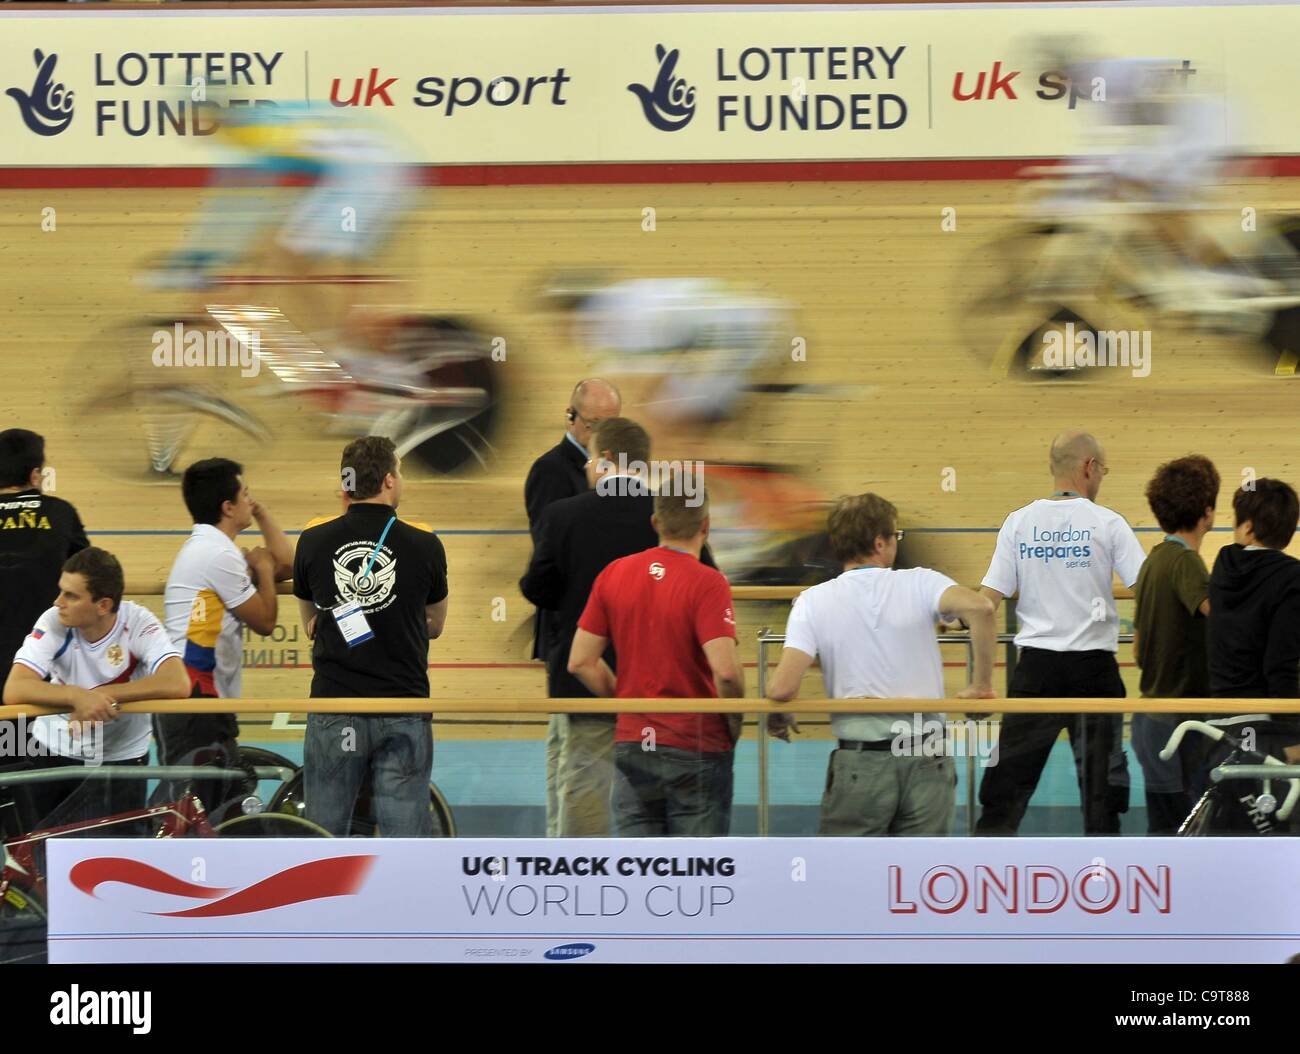 OLYMPIC 2012 VELODROME, LONDON, UK, Friday  17/02/2012. Riders go past the UCI Track Cycling World Cup London sign. - Stock Image